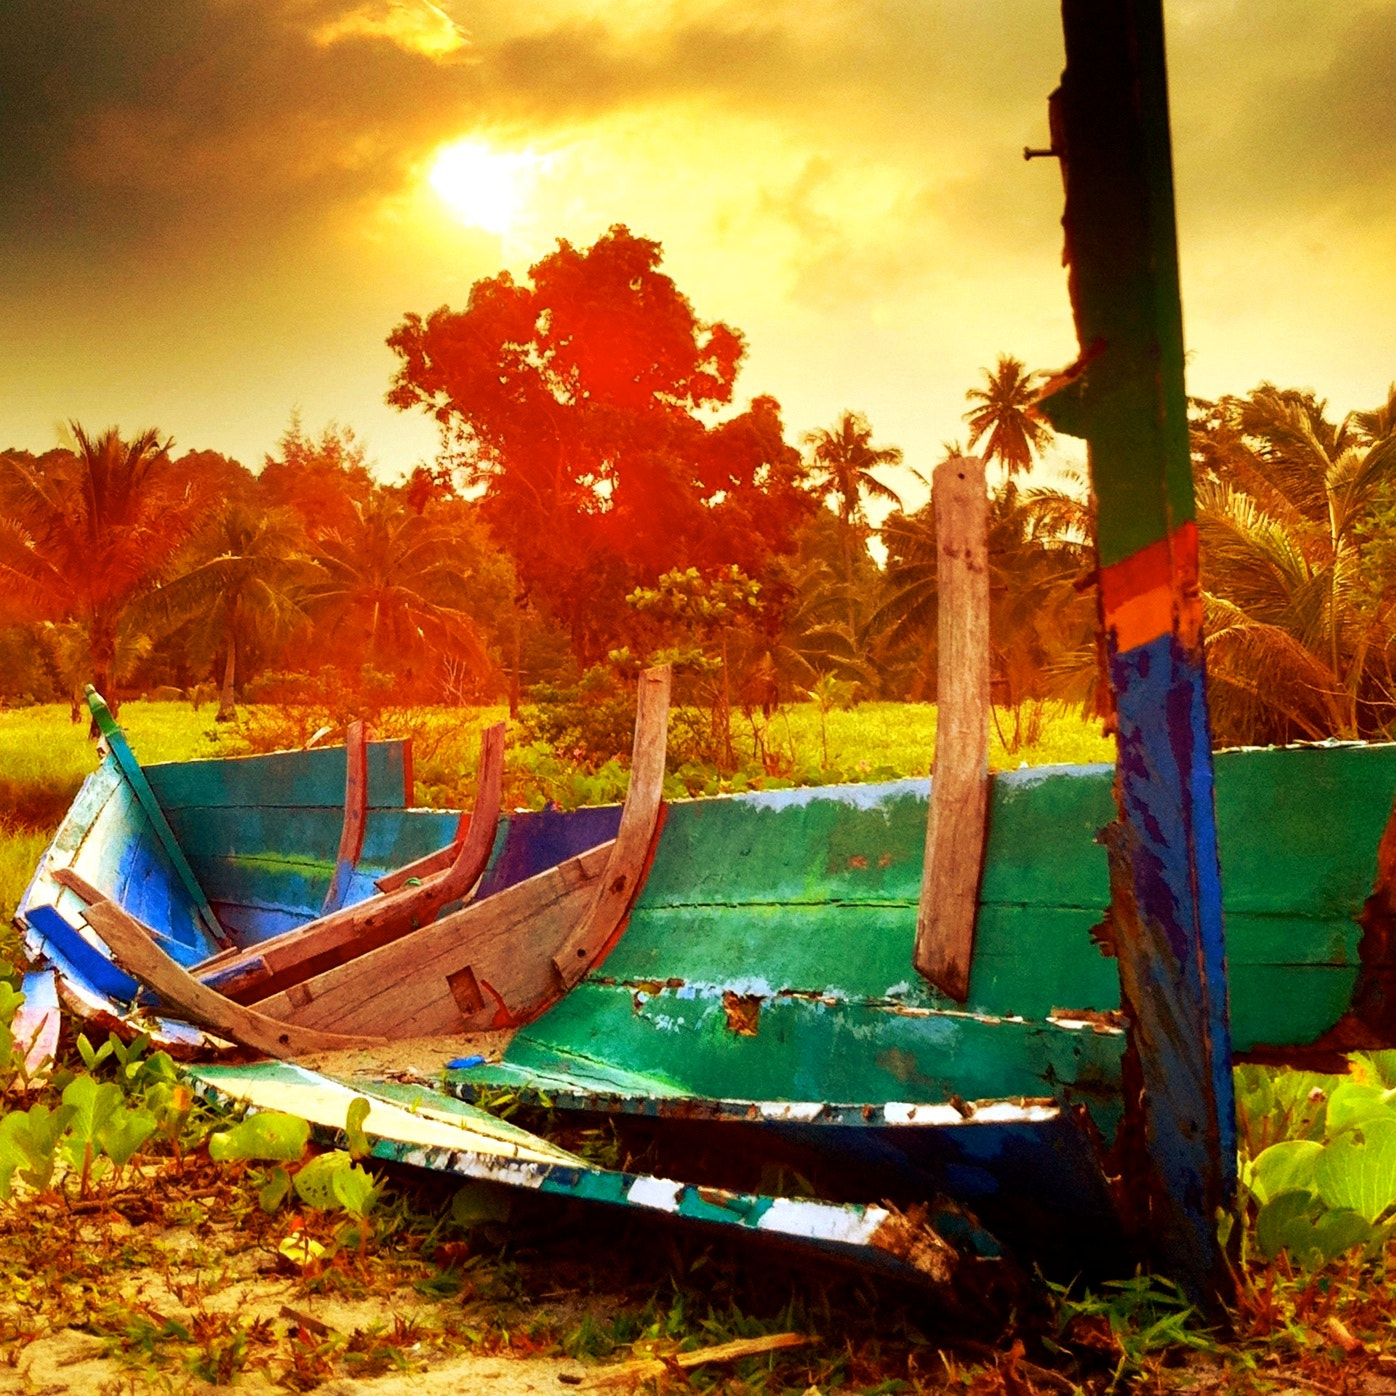 Photograph Abandoned Boat by the Beach by Ardiansyah Solaiman on 500px